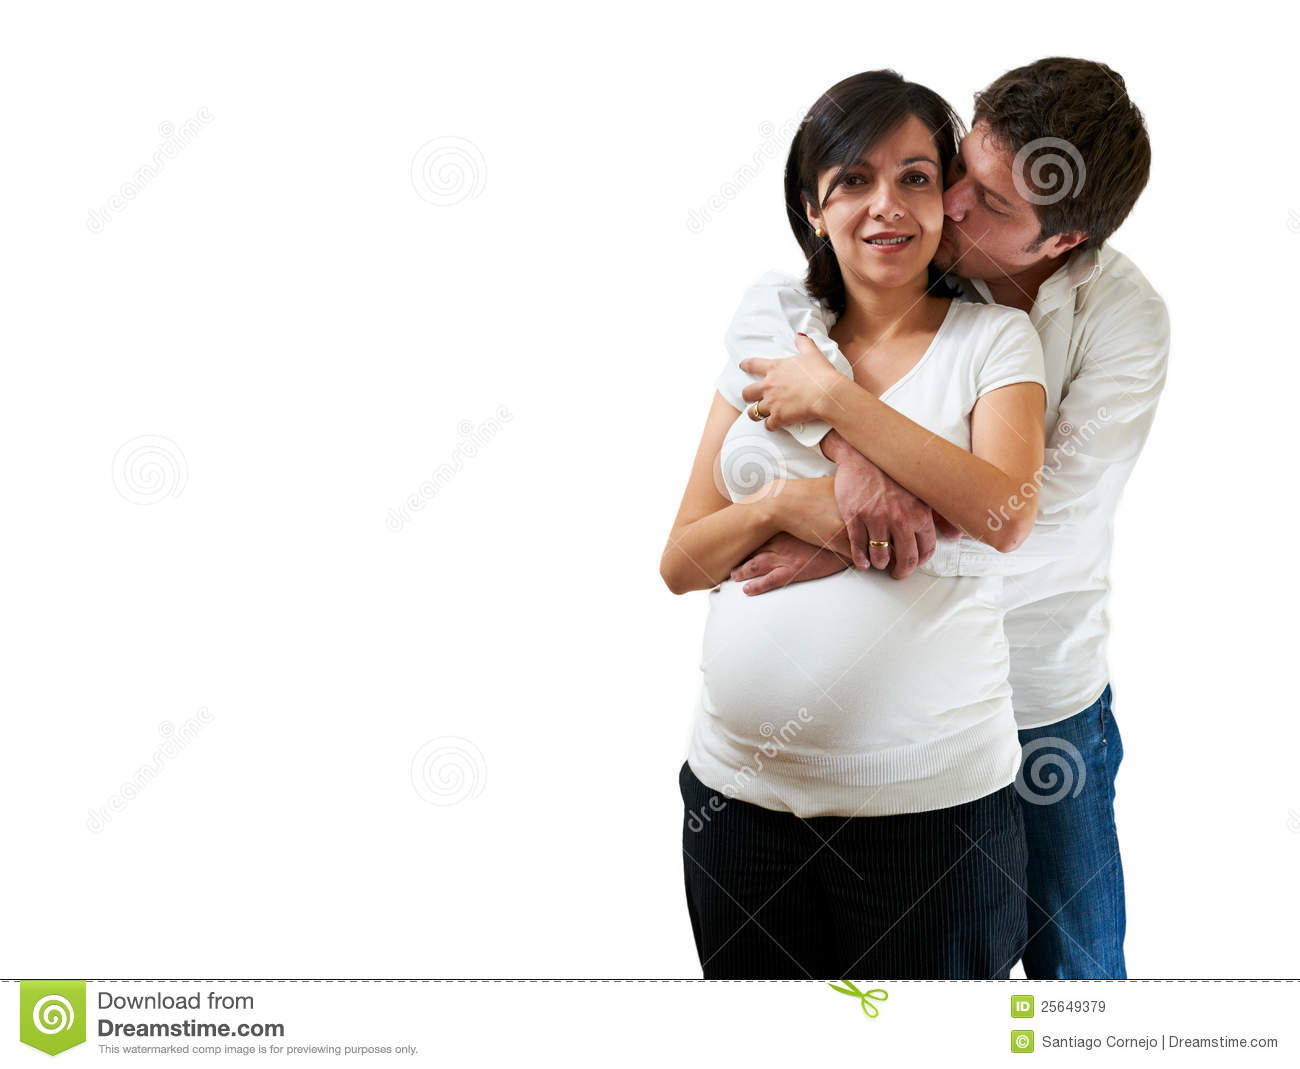 Young pregnant couple hugging on white background. Young Pregnant Couple Hugging On White Background Royalty Free